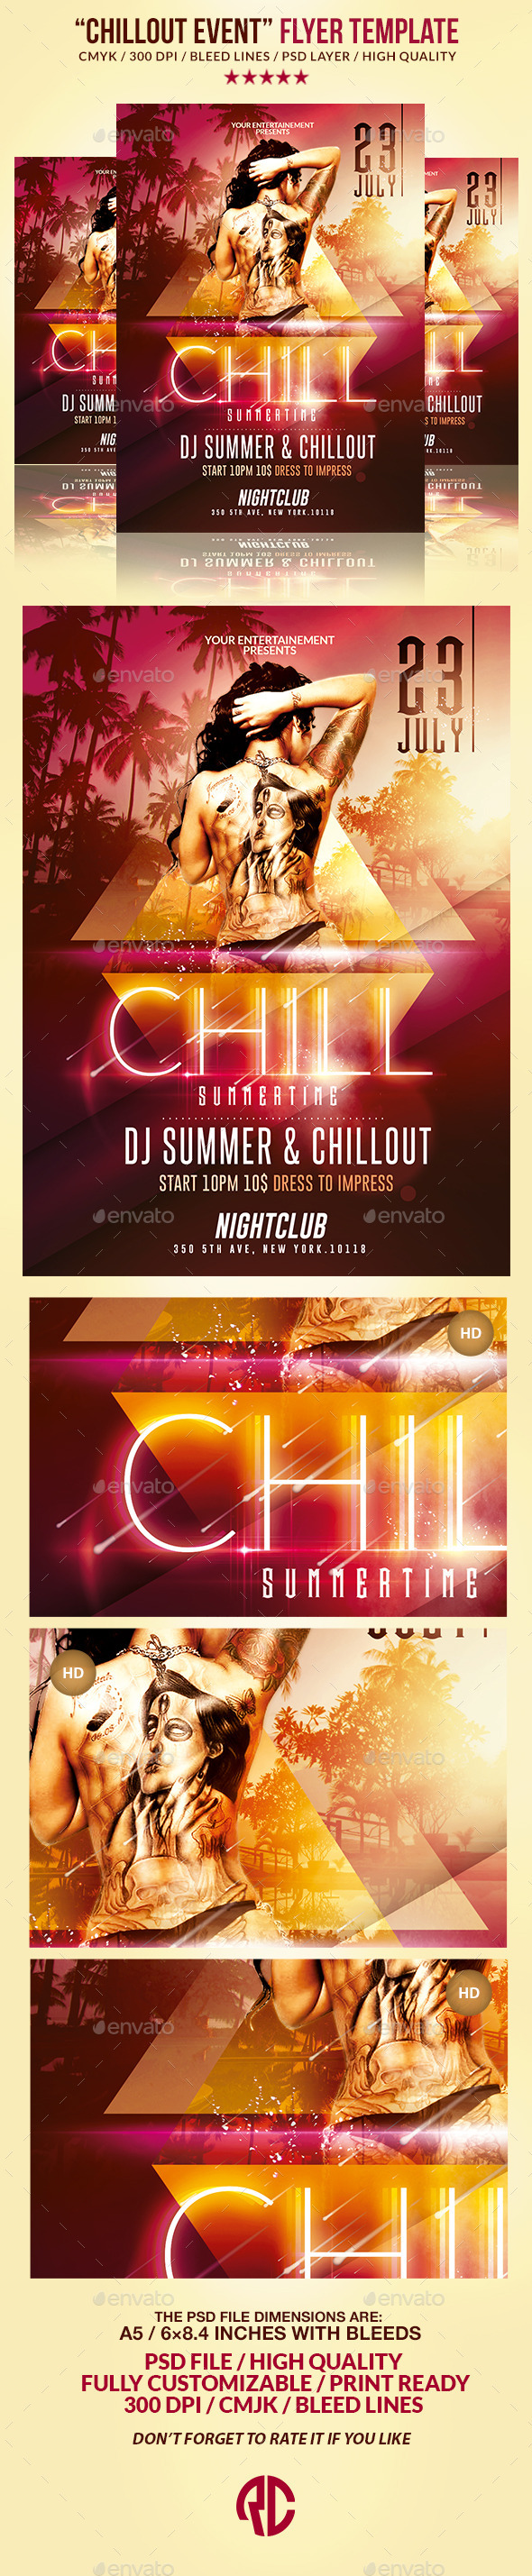 Summer Chill out | Psd Flyer Template - Events Flyers